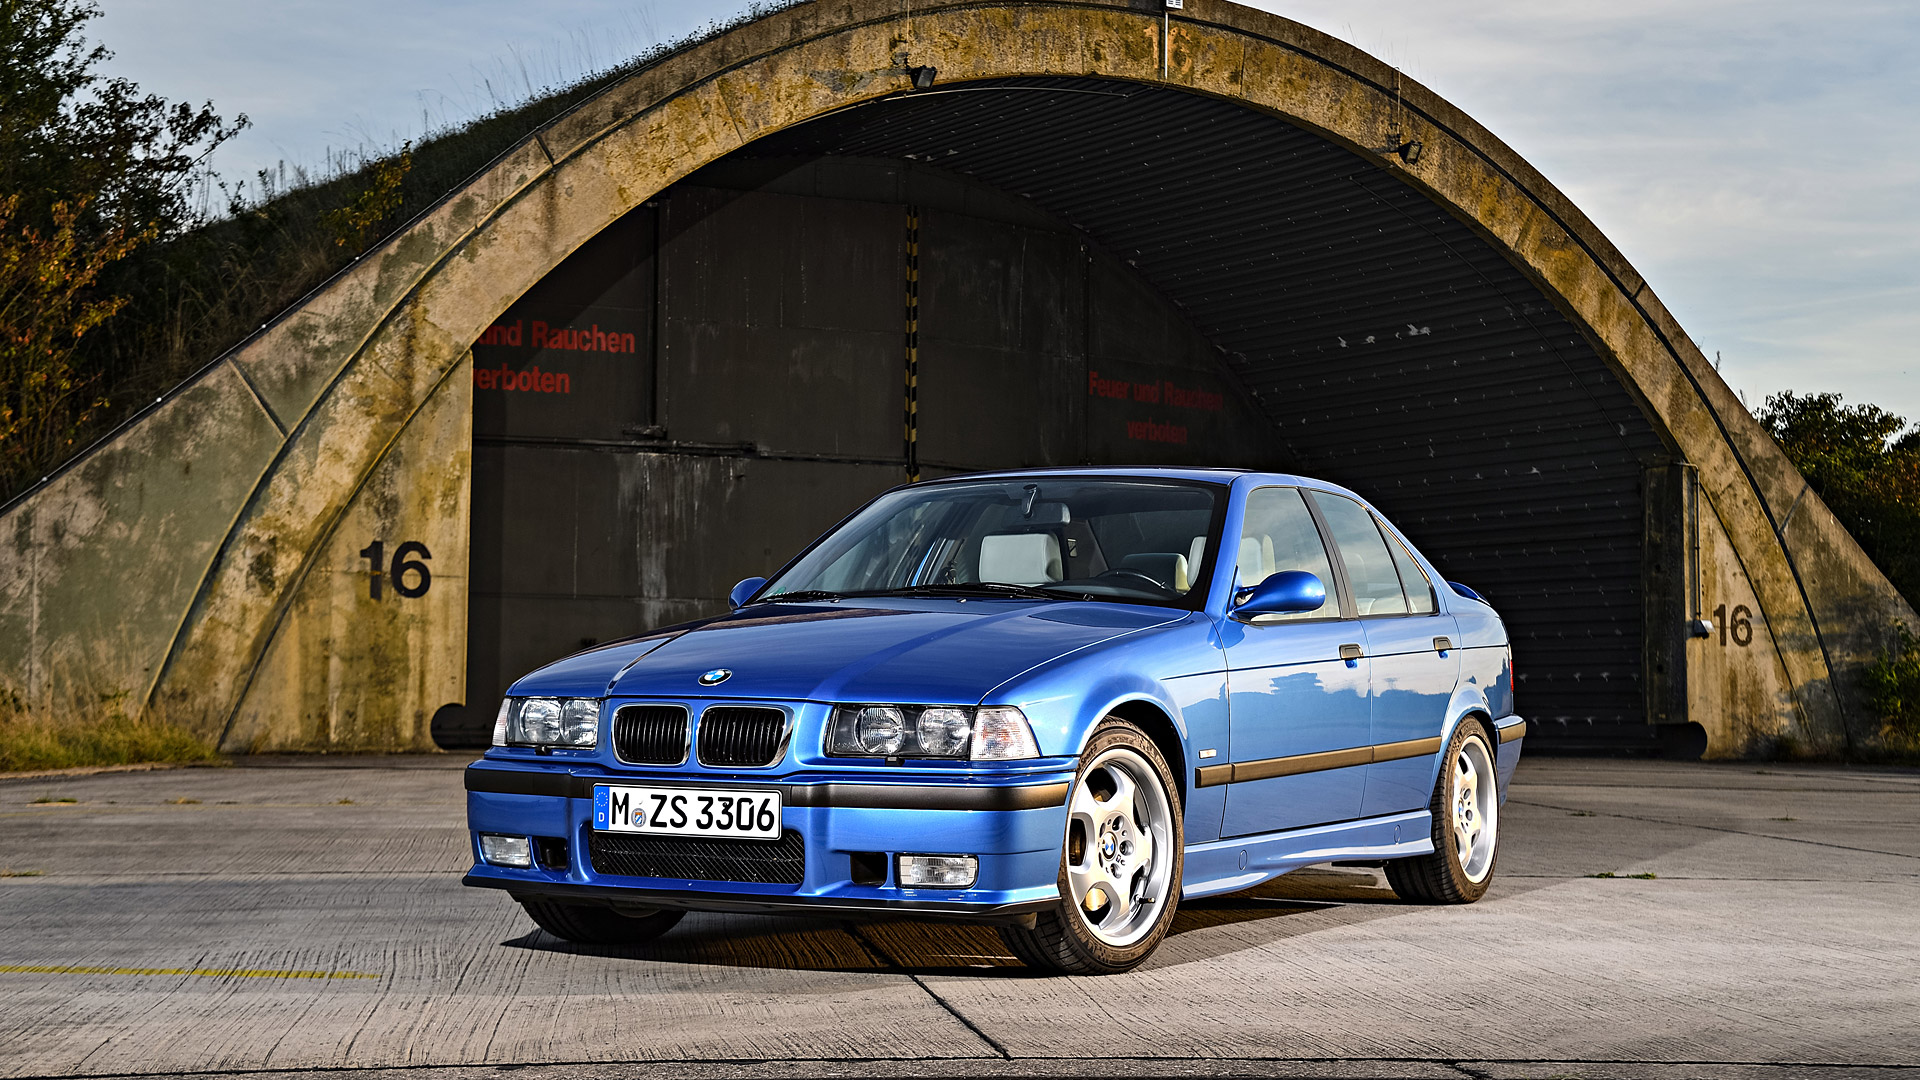 56 of the greatest sports  u0026 performance cars of the 1990s